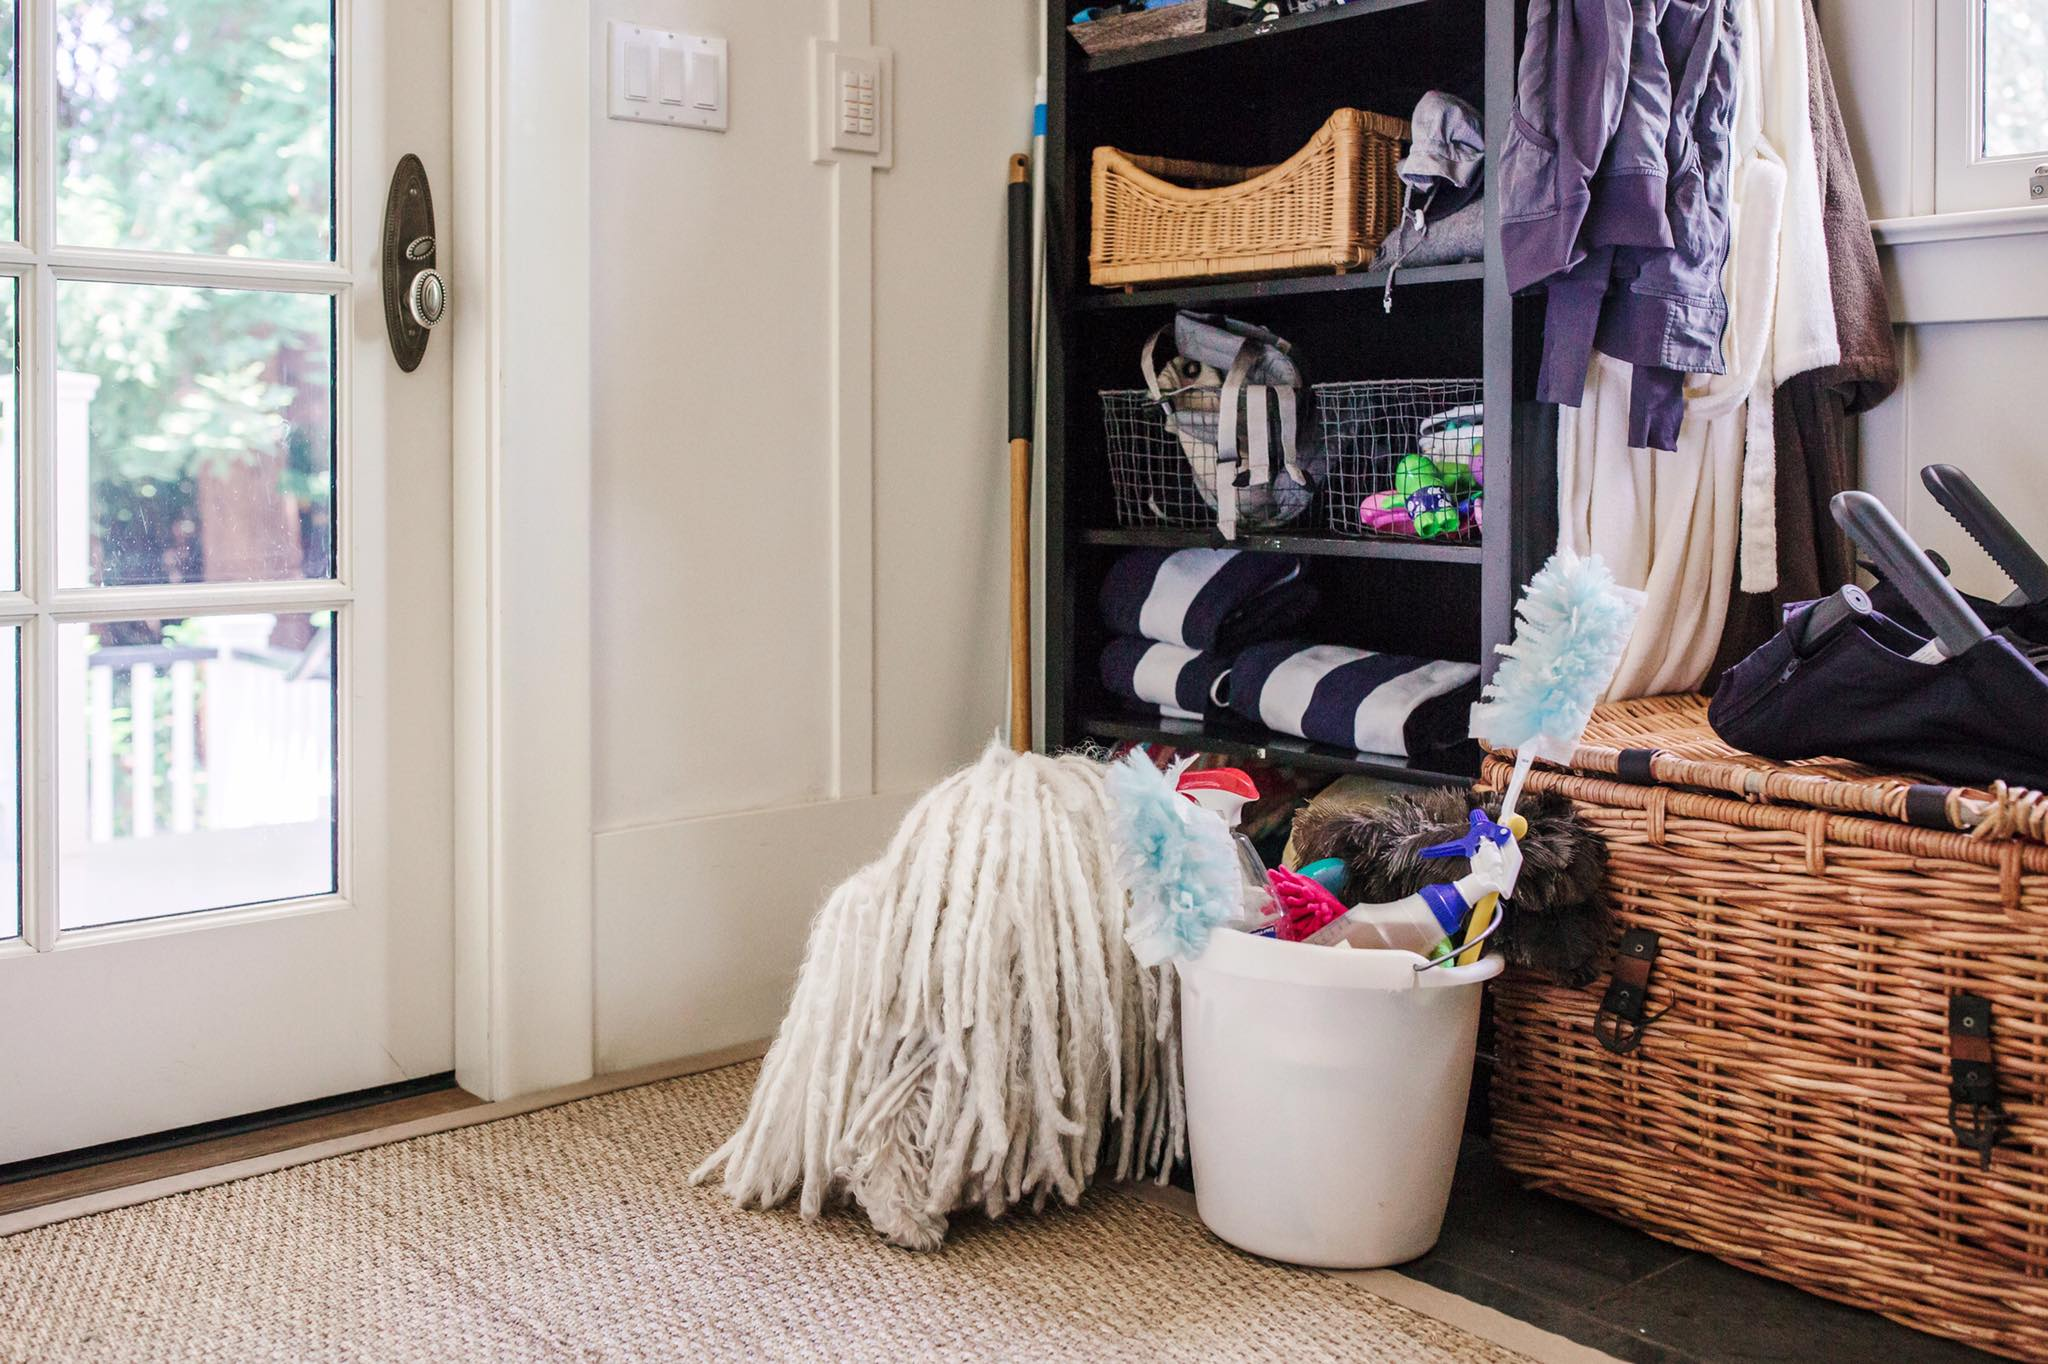 Can you spot Mark Zuckerberg's dog hiding among these everyday objects?